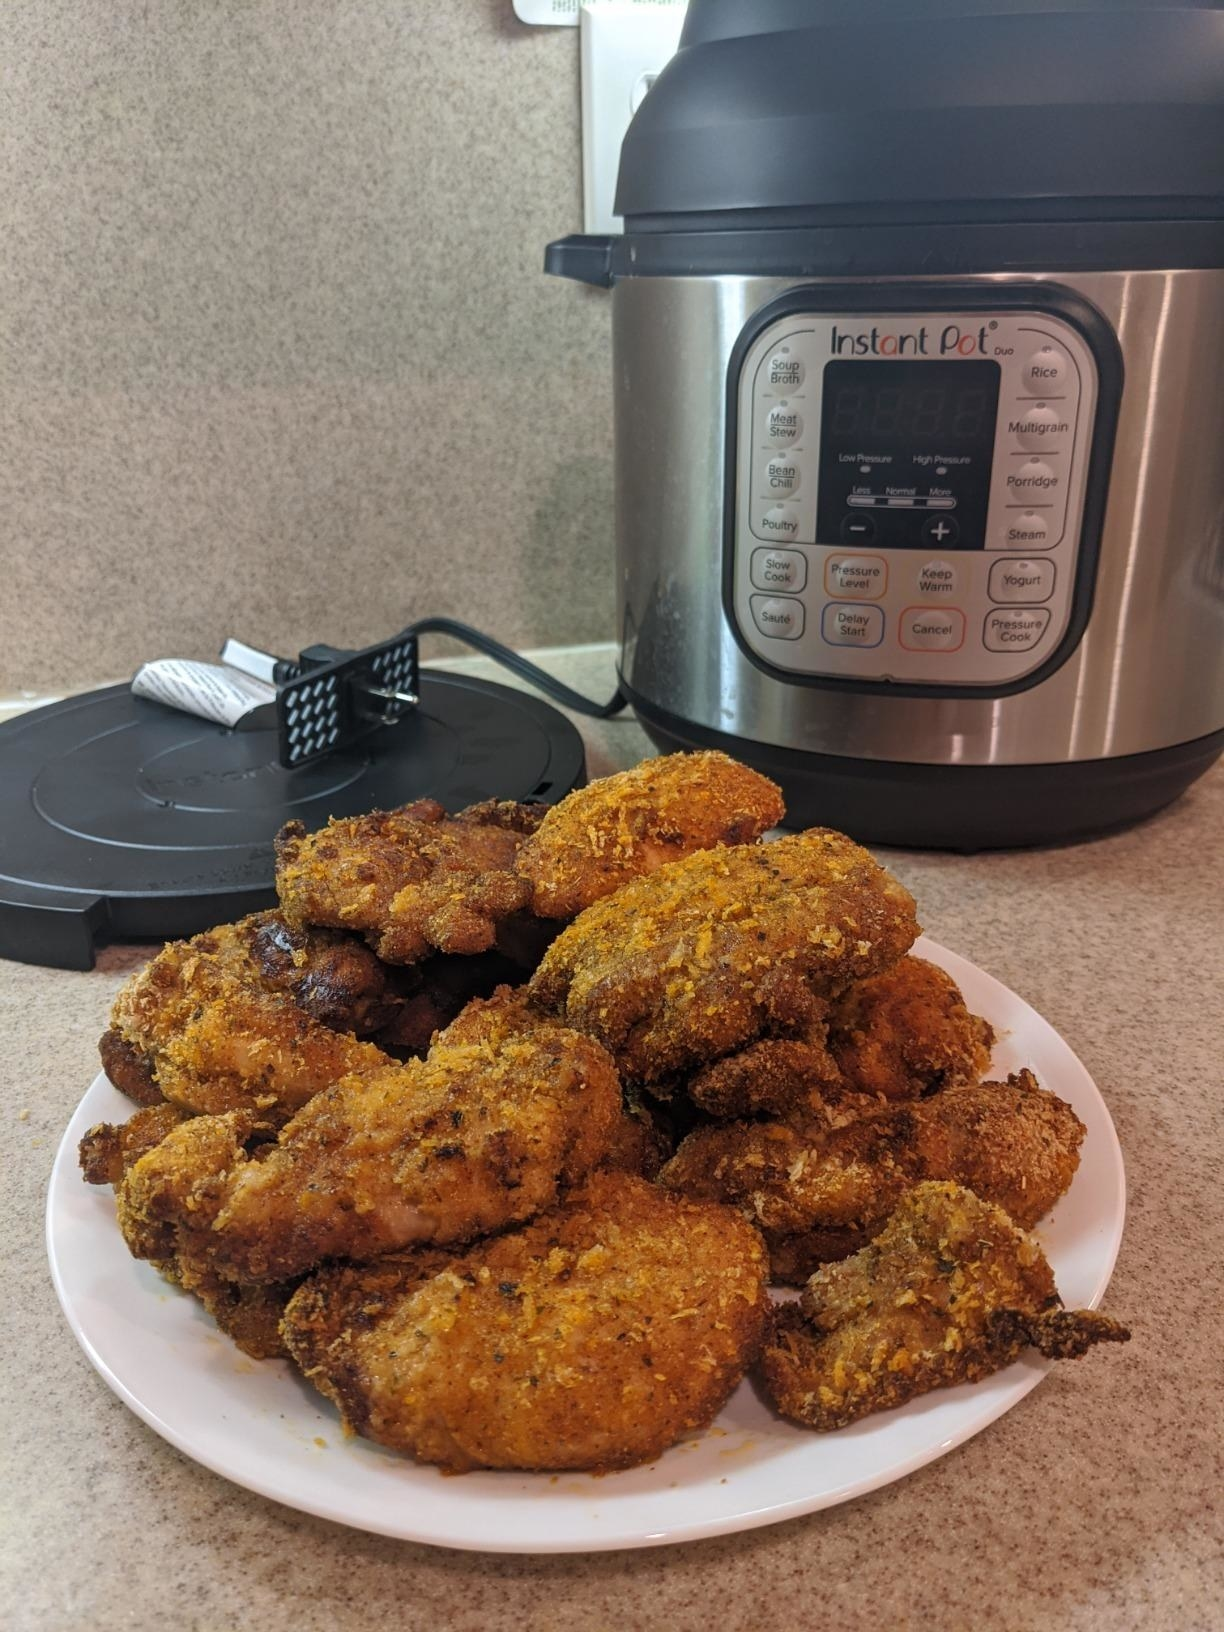 Reviewer picture of the circular-shaped InstaPot with a plate of breaded chicken in front of it